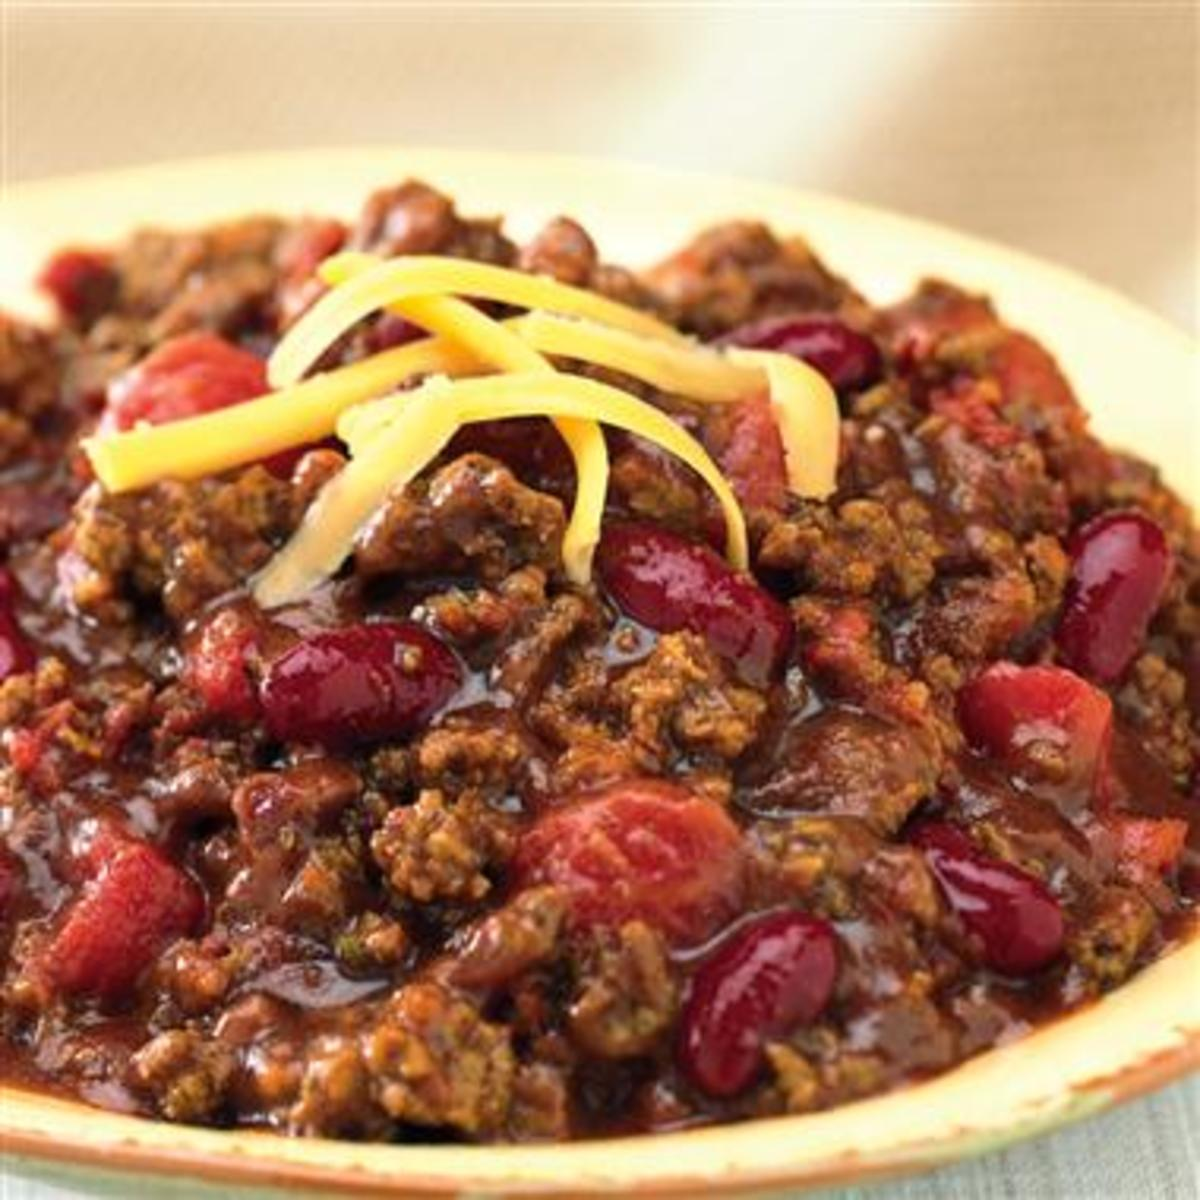 Here is one of the most delicious recipes for slow cooker chili that you will ever eat.